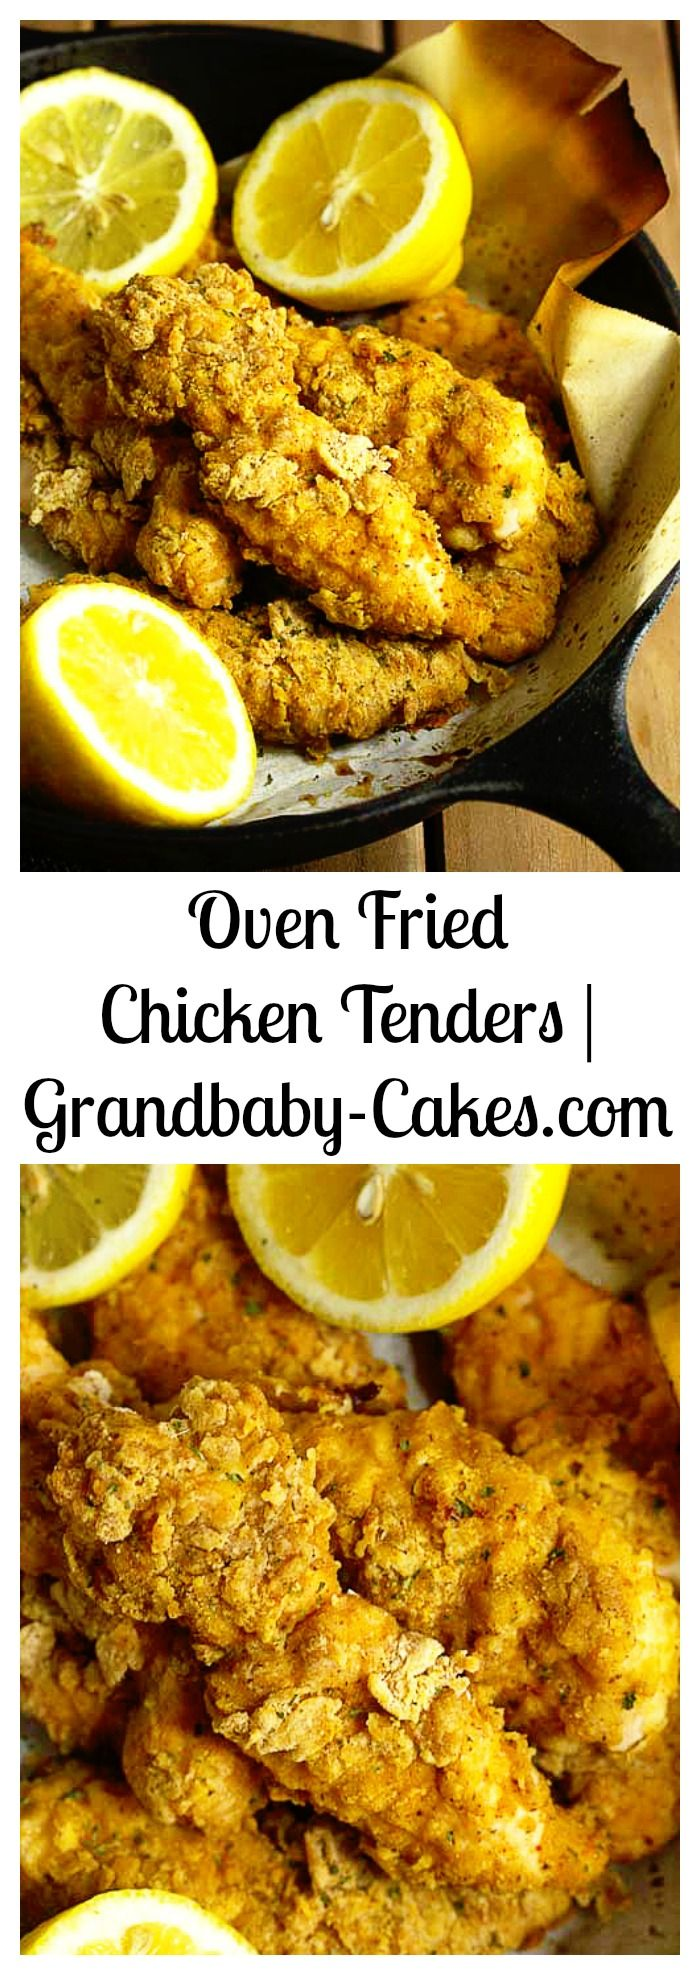 Oven Fried Chicken Tenders - Perfectly Crispy and Crunchy just like they are fried!  | Grandbaby-Cakes.com